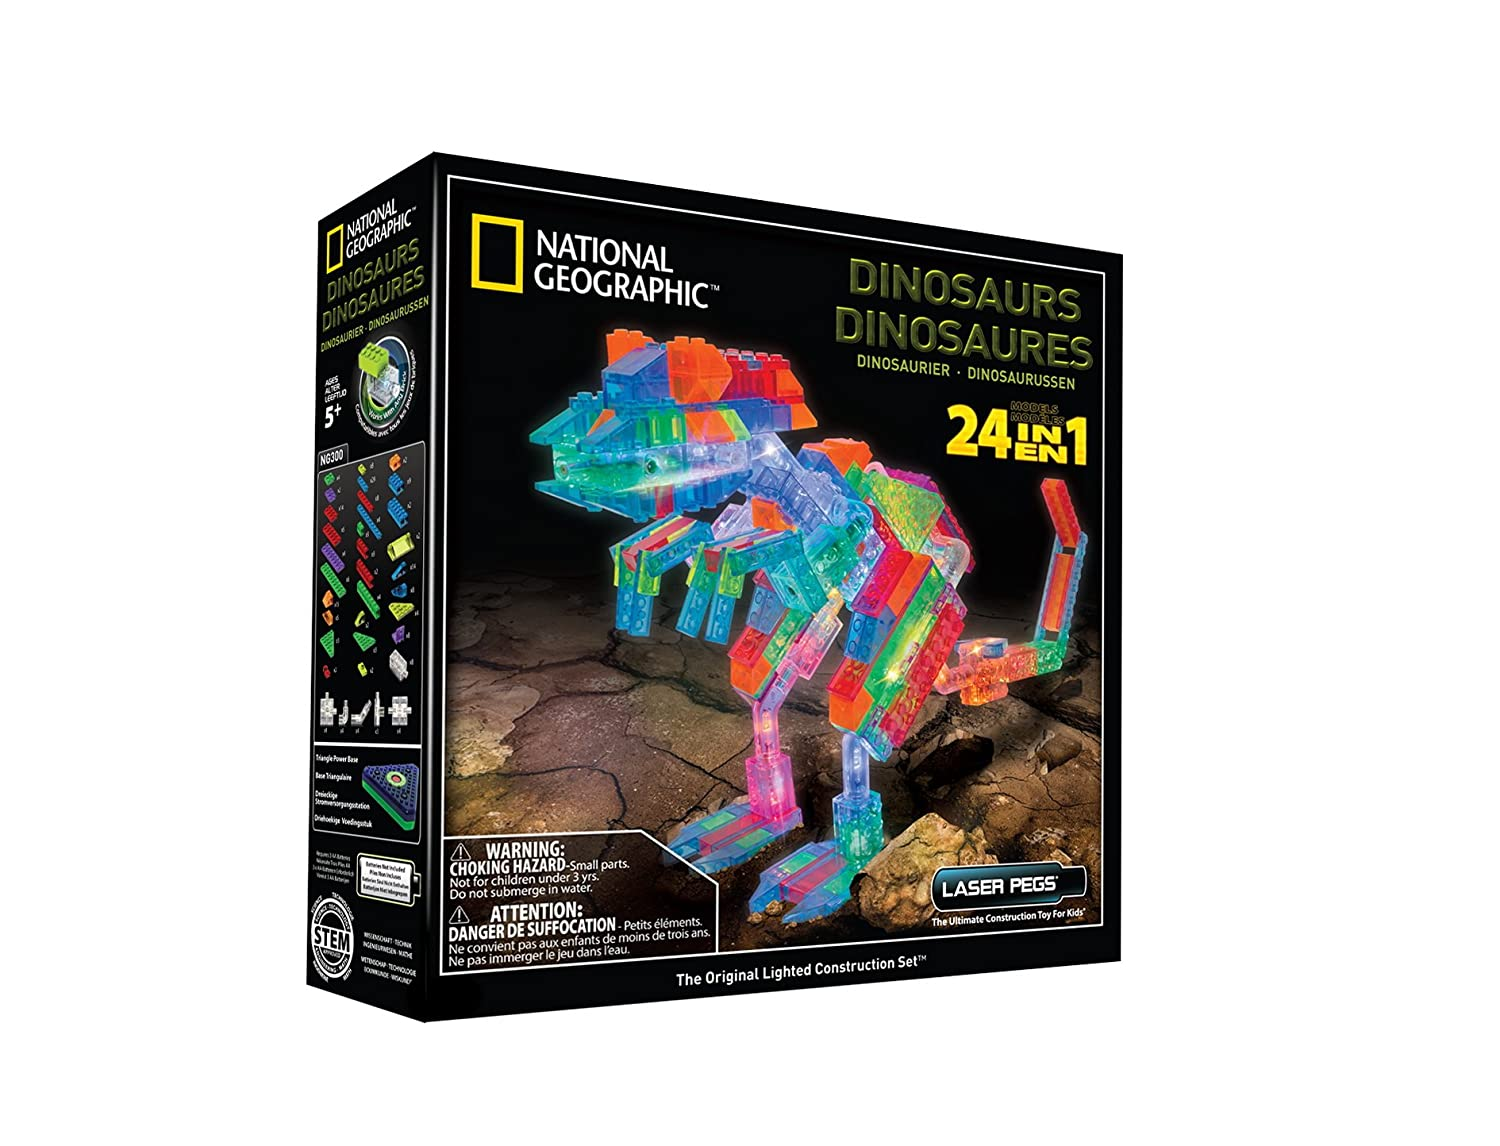 Laser Pegs National Geographic Dinosaurs Building Kit -The base on this Laser Pegs National Geographic Dinosaurs Build Kit is sound activated and compatible with other popular construction kits